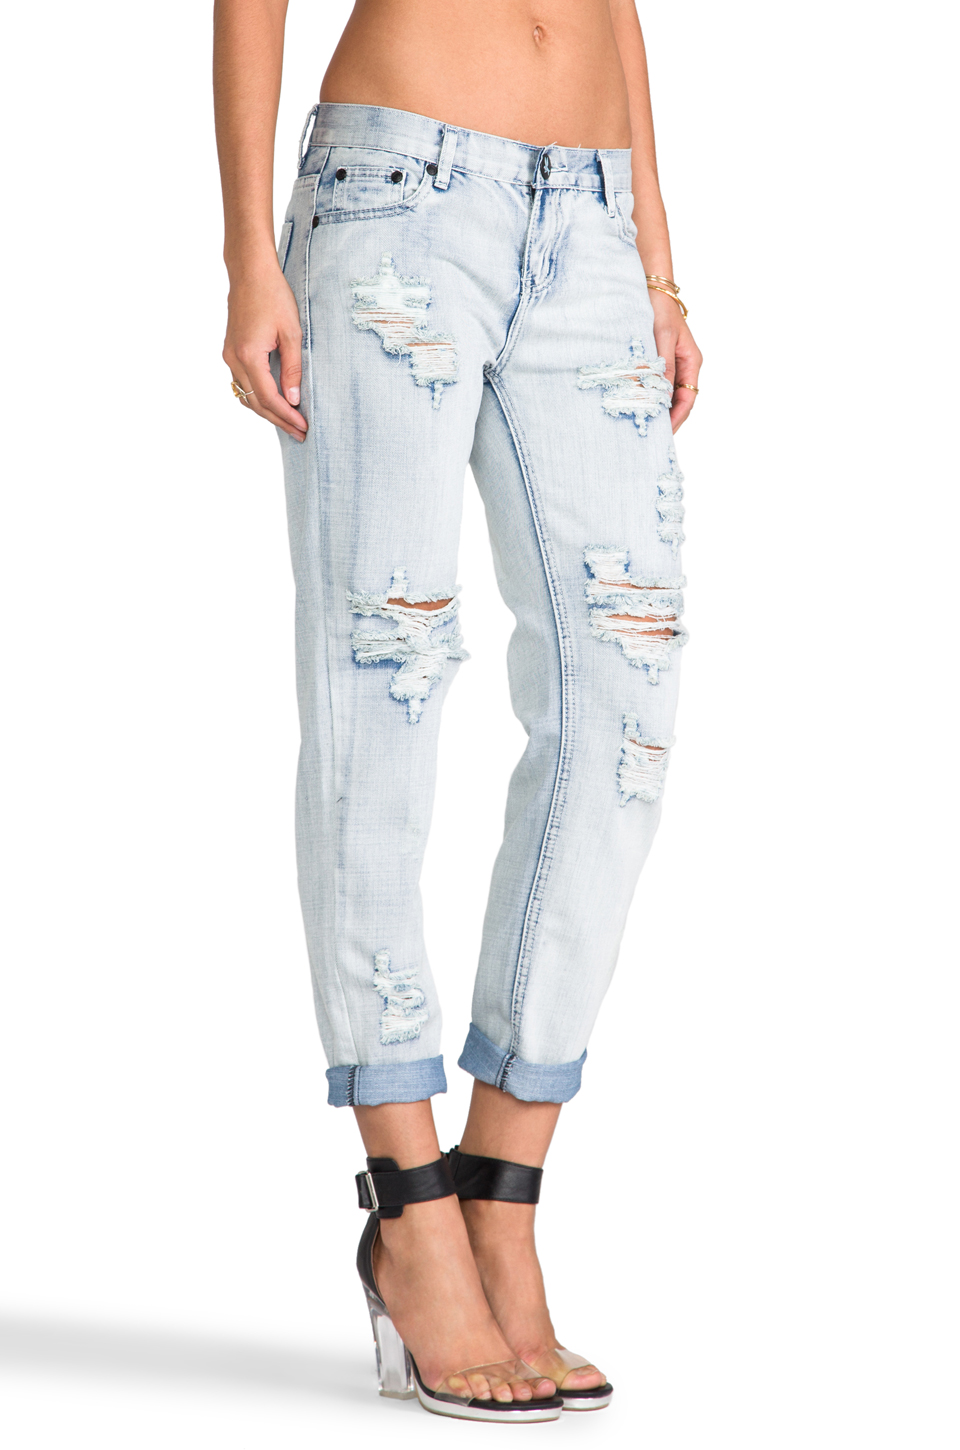 One Teaspoon Awesome Baggies Jeans in Fiasco | REVOLVE